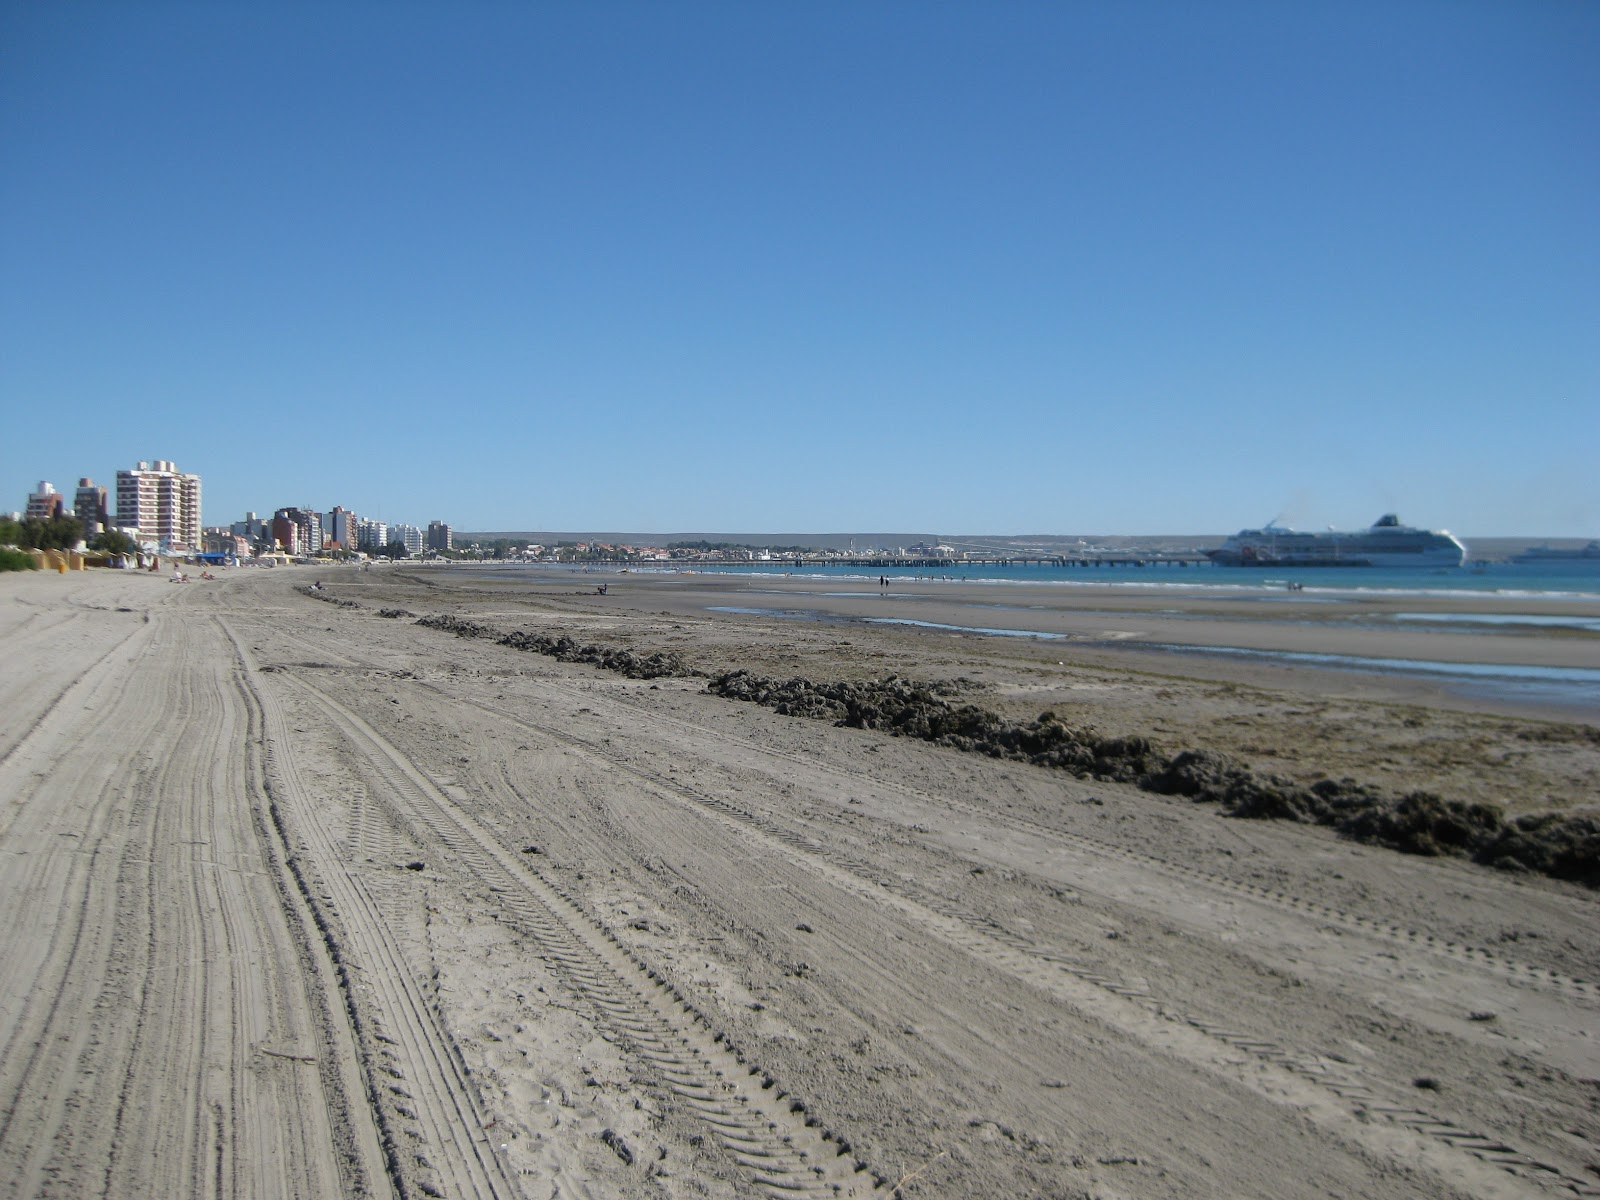 Puerto Madryn beach